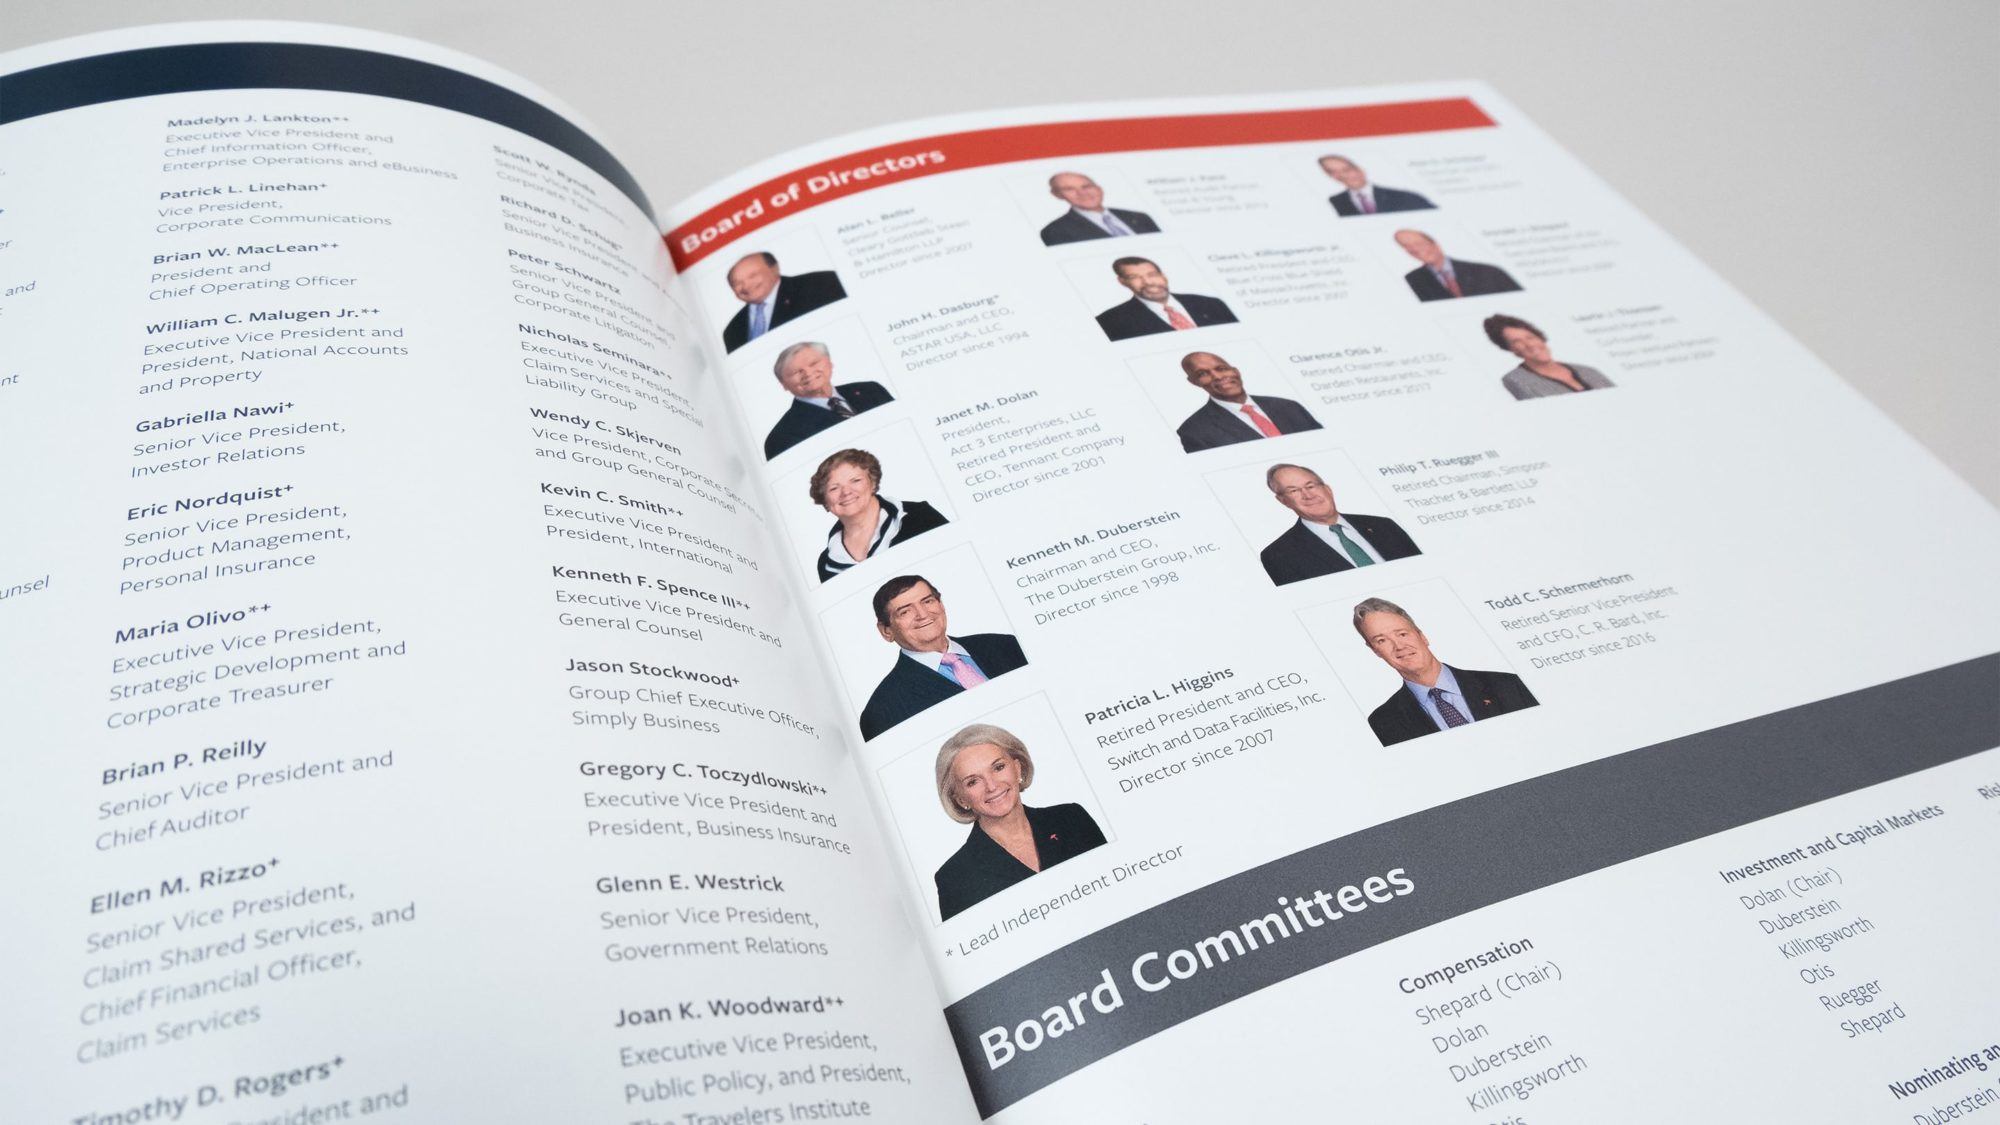 Page showing Travelers' Board of Directors with headshots, names, and titles